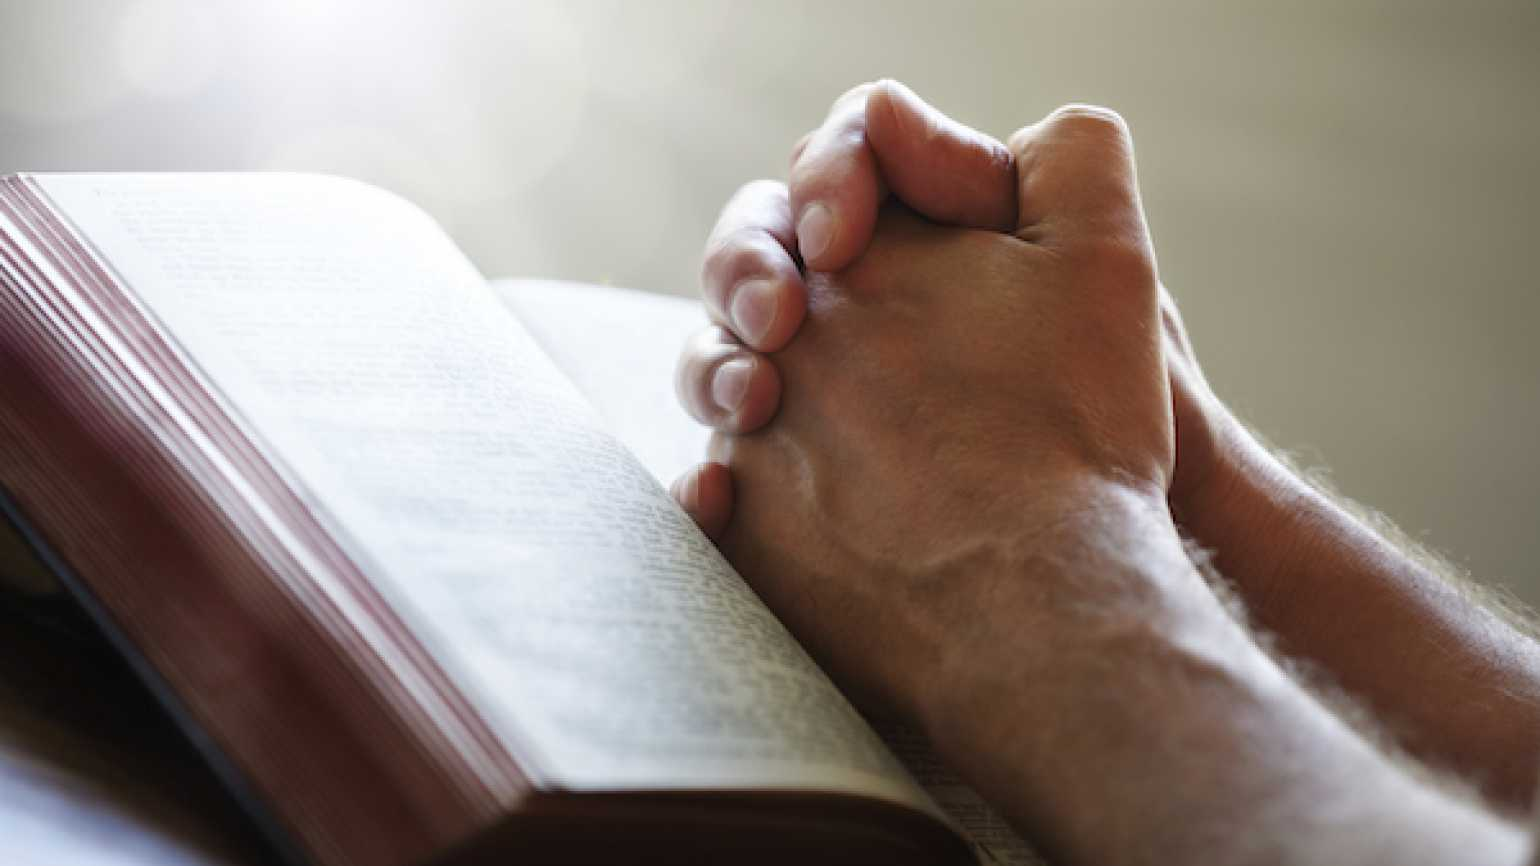 Studies explore the power of prayer and faith in helping others.